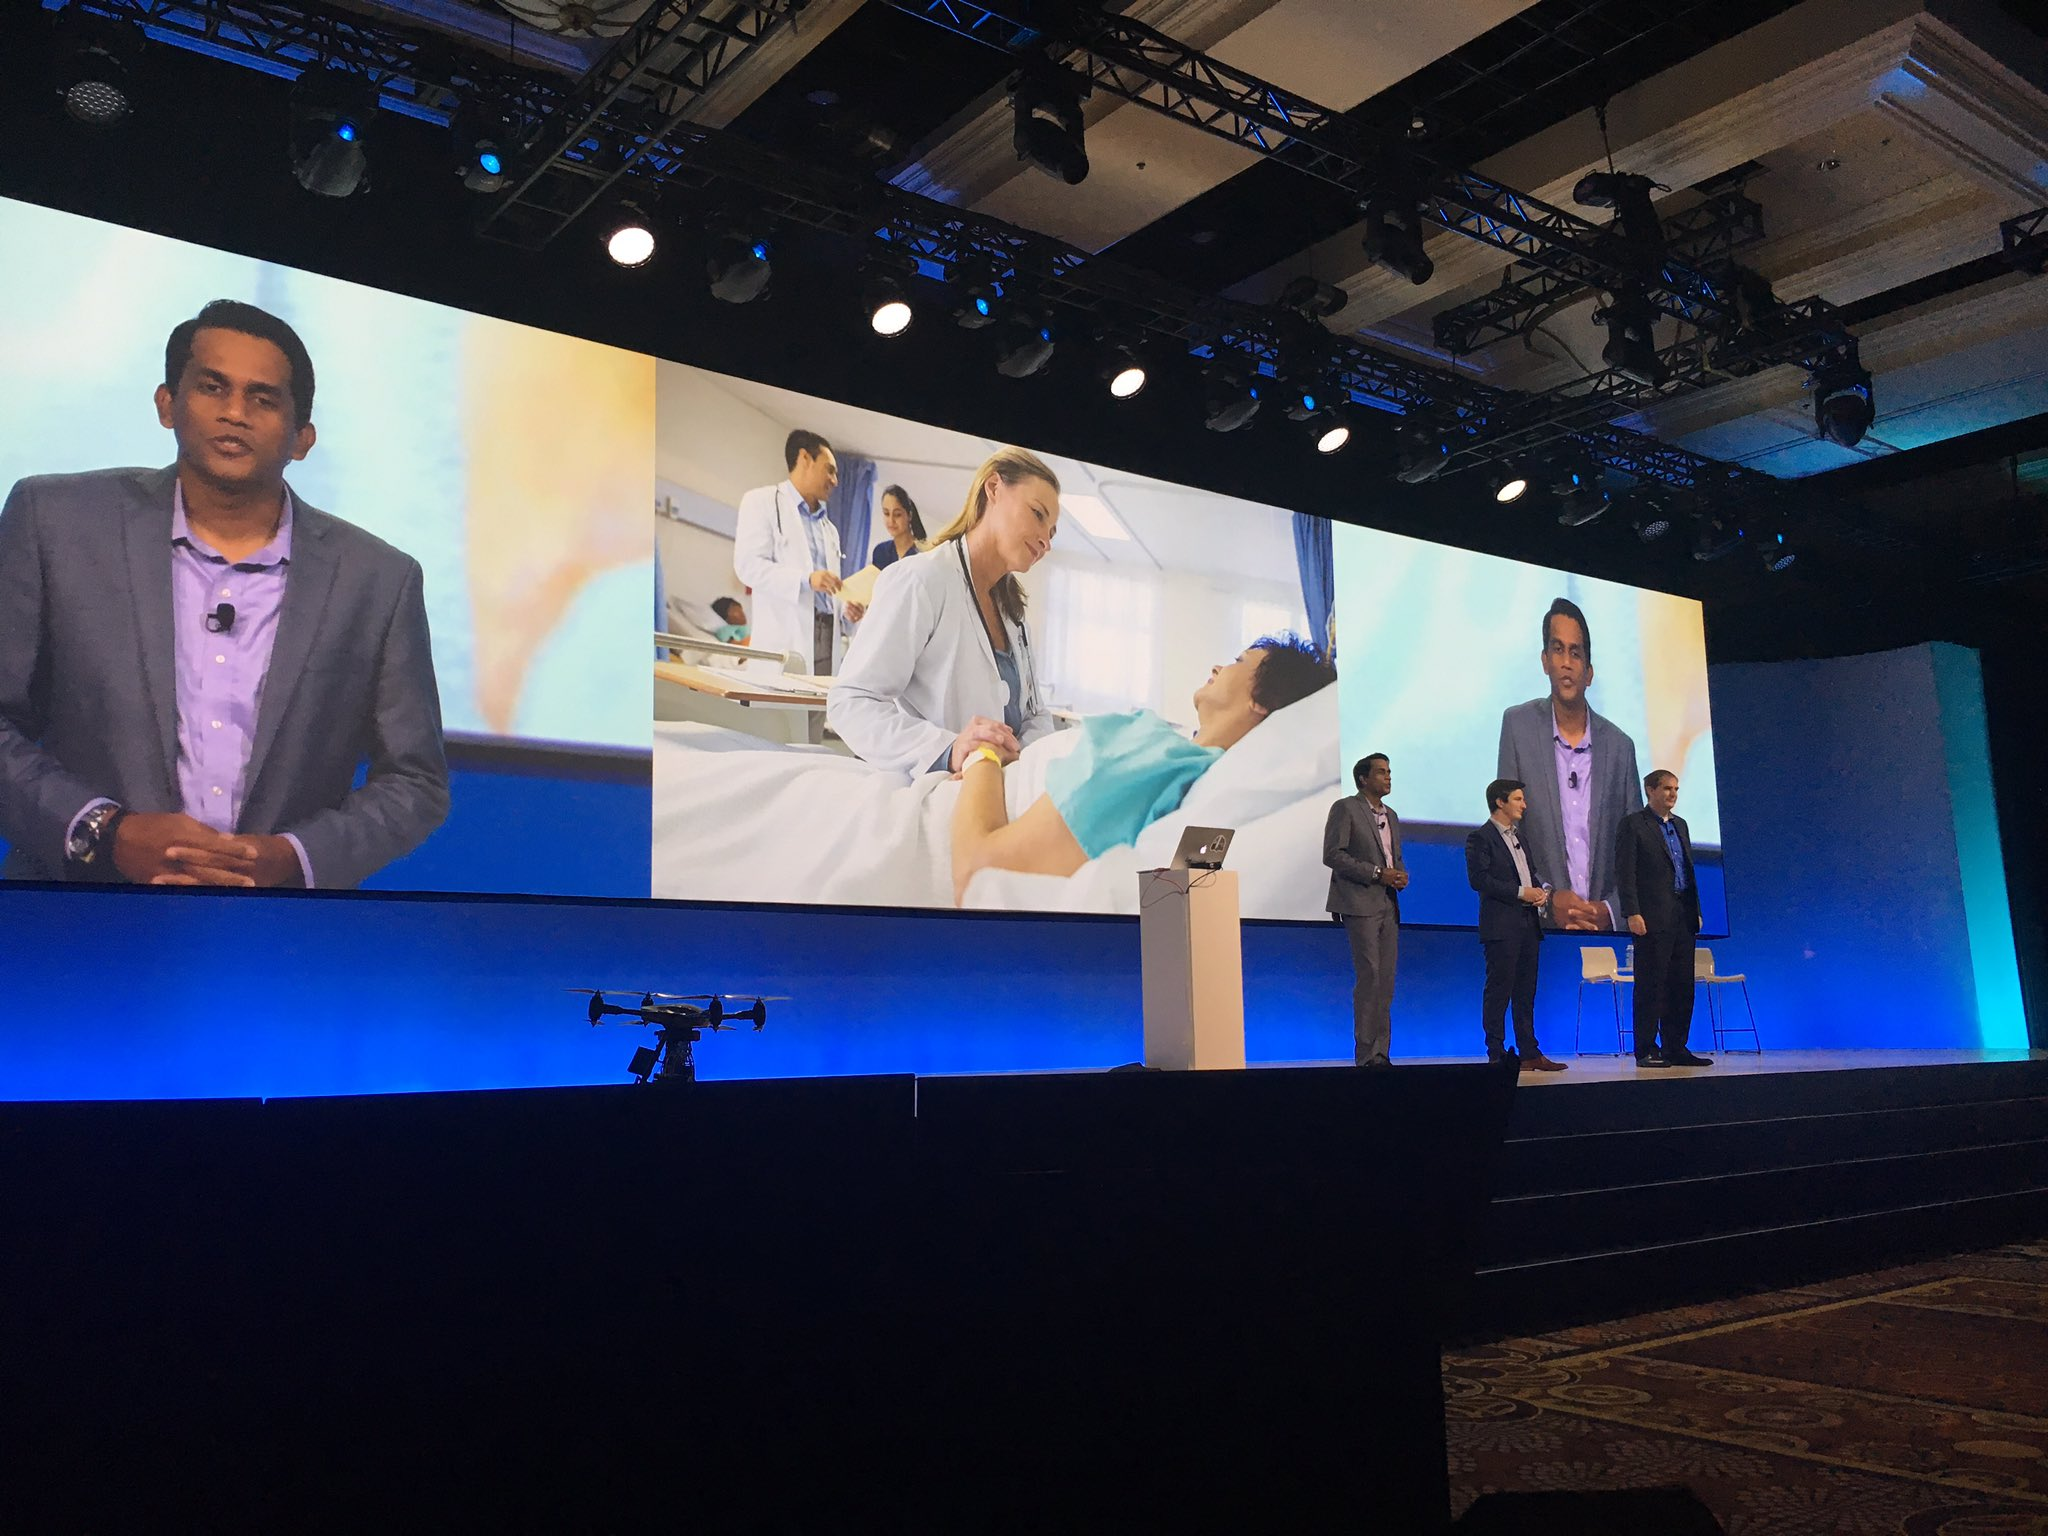 .@TJUHospital, @Aerialtronics and @HoneywellBuild are on stage discussing how #WatsonIoT revolutionizes their businesses #ibmwow https://t.co/i0Ox2ZvbLM